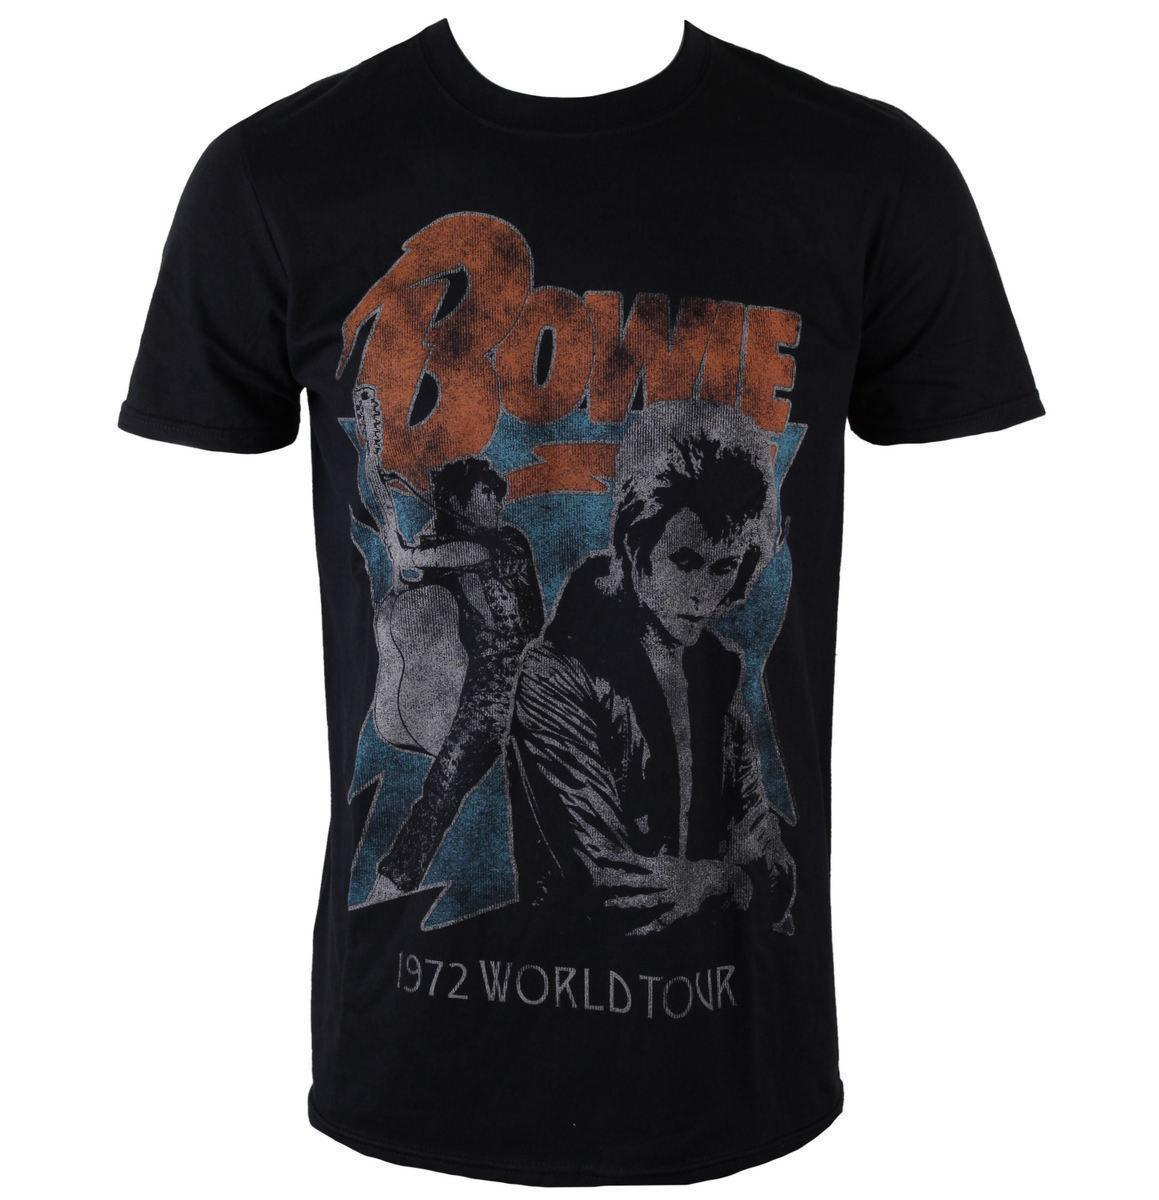 5169b94edab Männer Shirt David Bowie 1972 World Tour Black Rock Off Größe Xxl Mens T  Shirt Cool Tshirt Designs From Zhangjingxin26